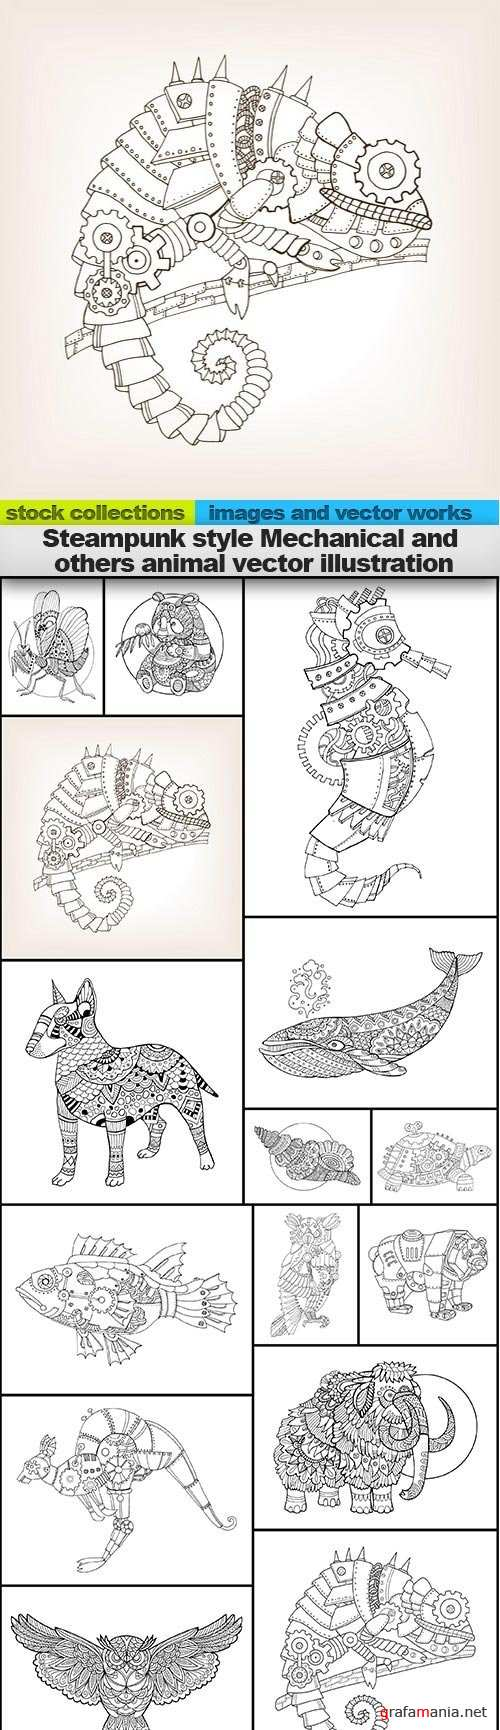 Steampunk style Mechanical and others animal vector illustration, 15 x EPS